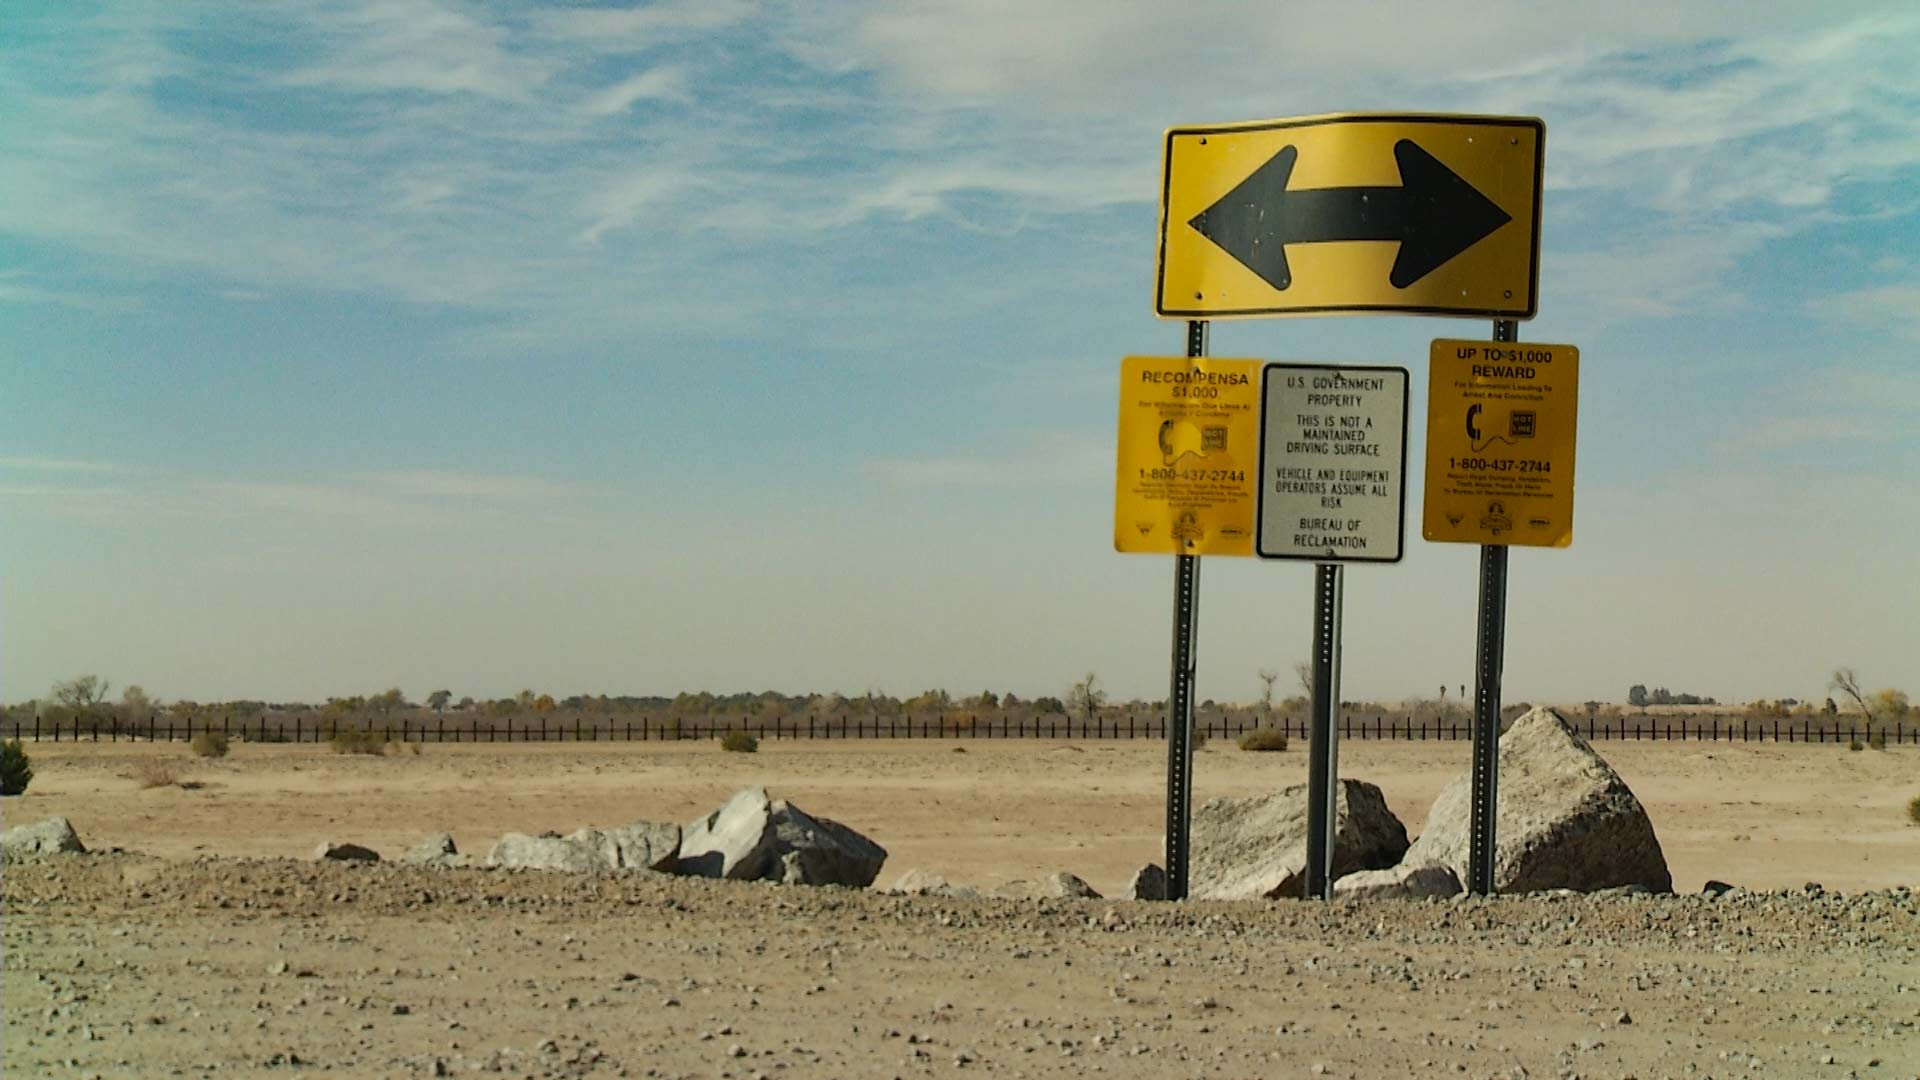 Signs posted in the Yuma Sector. In the background, a border vehicle barrier can be seen.